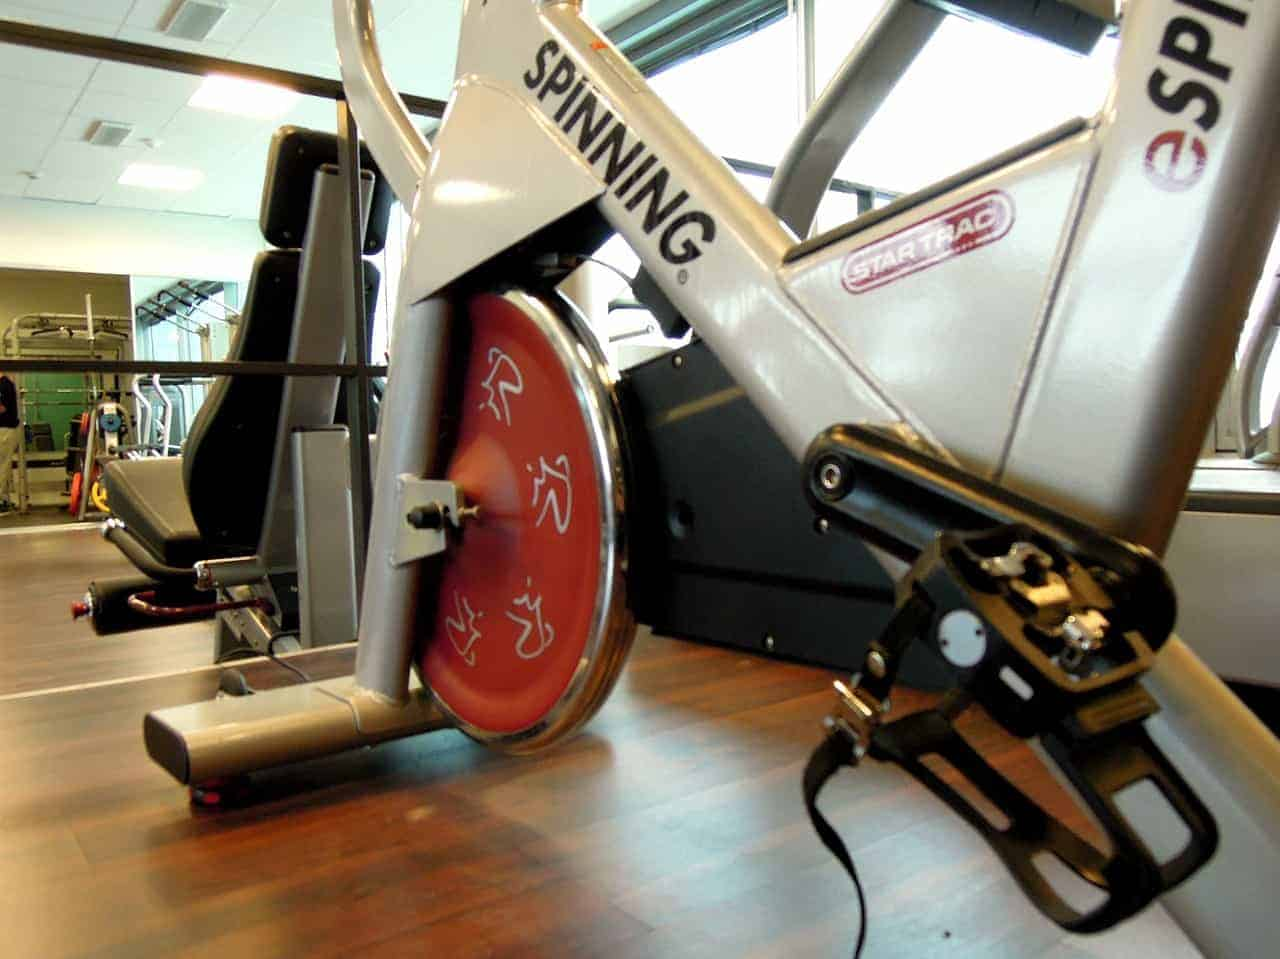 Are Spin Classes Good?